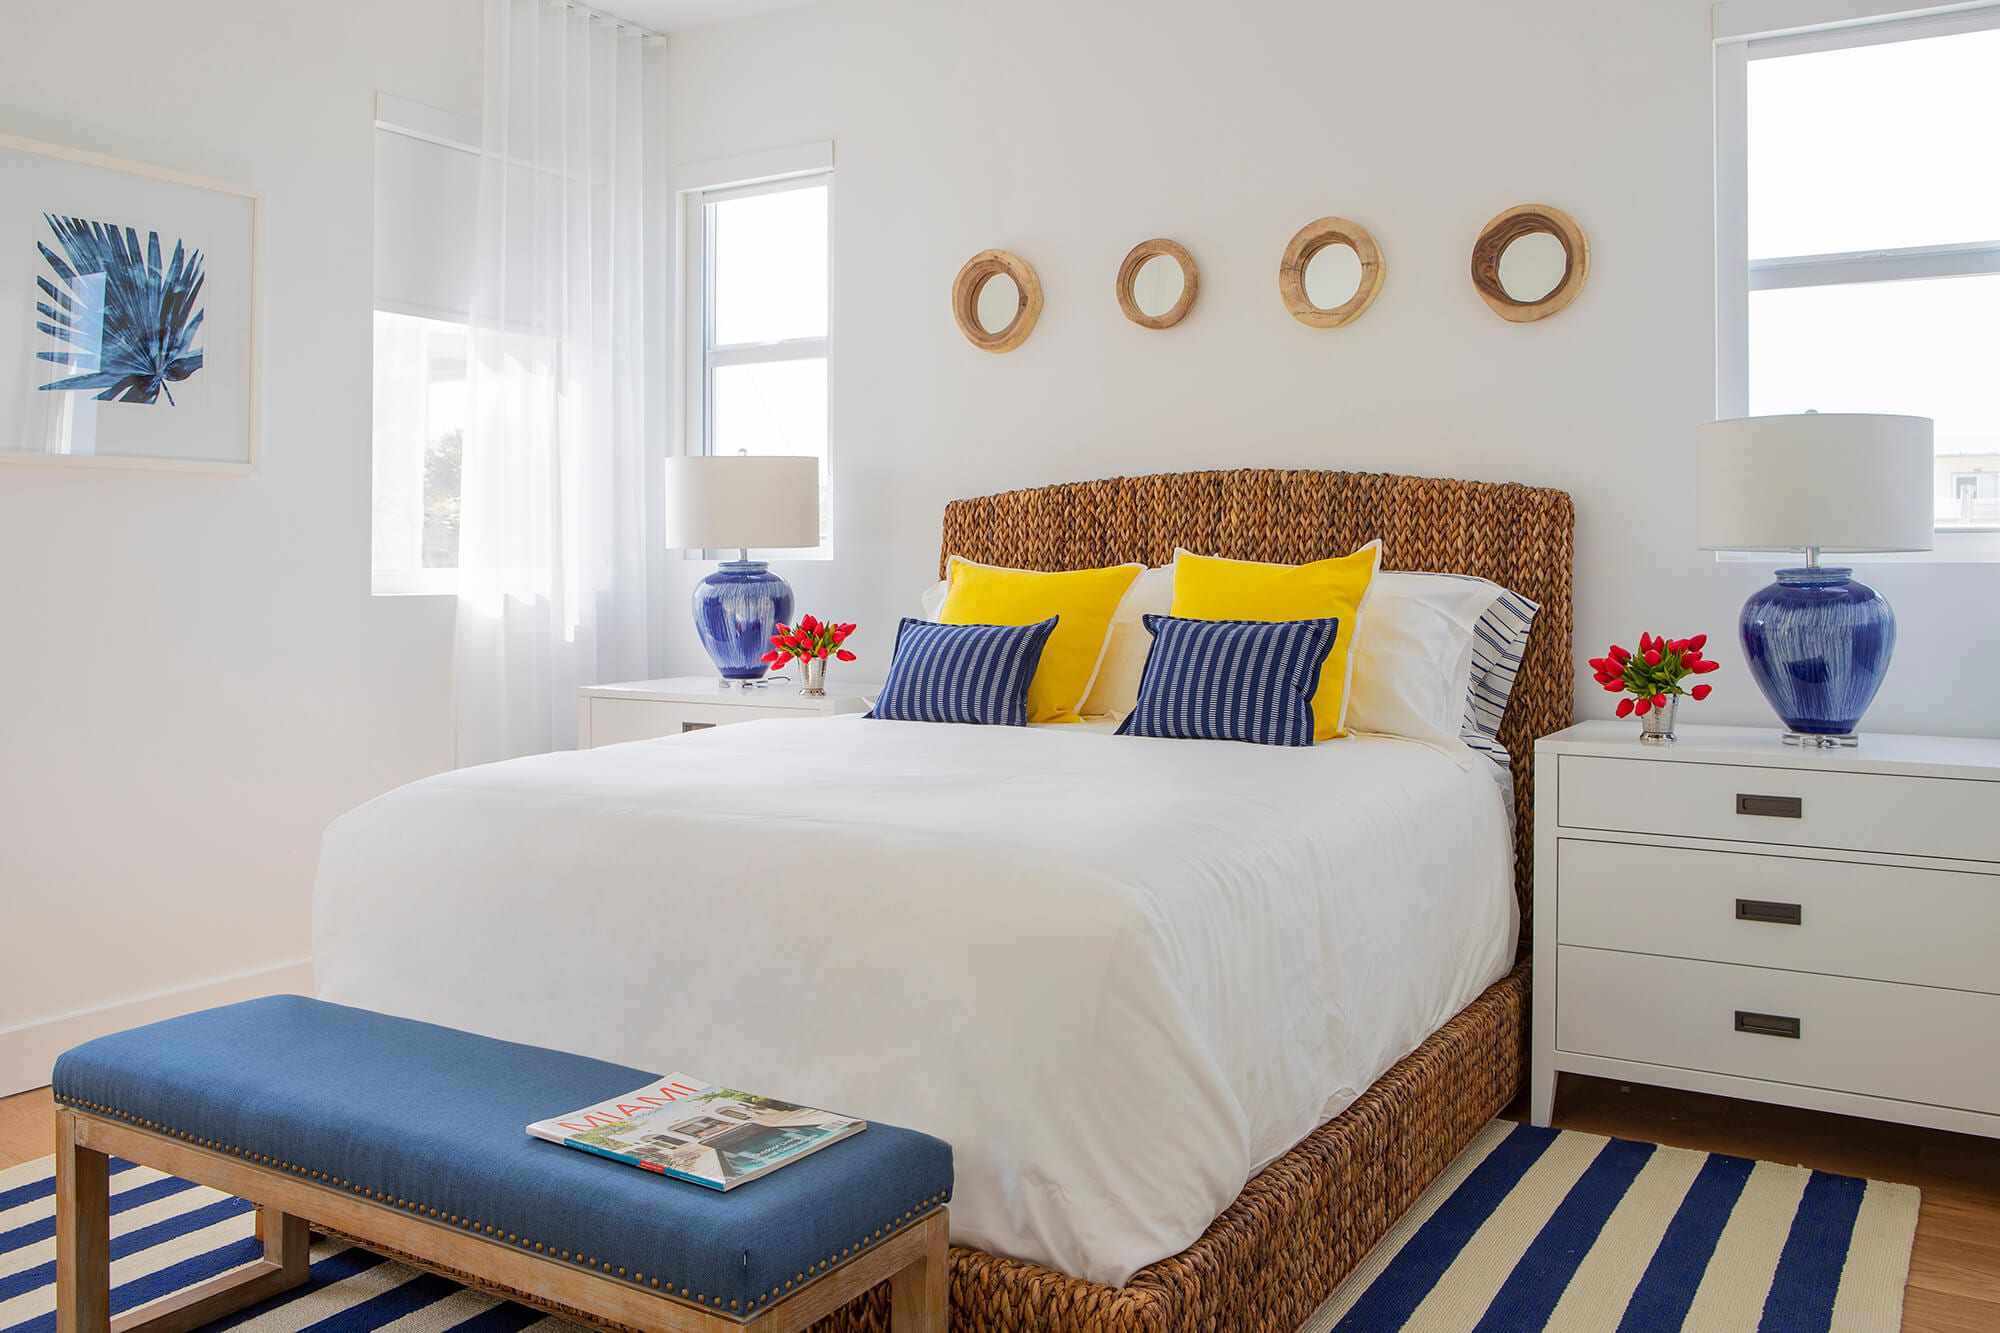 Bedroom with natural stones and nautical blue